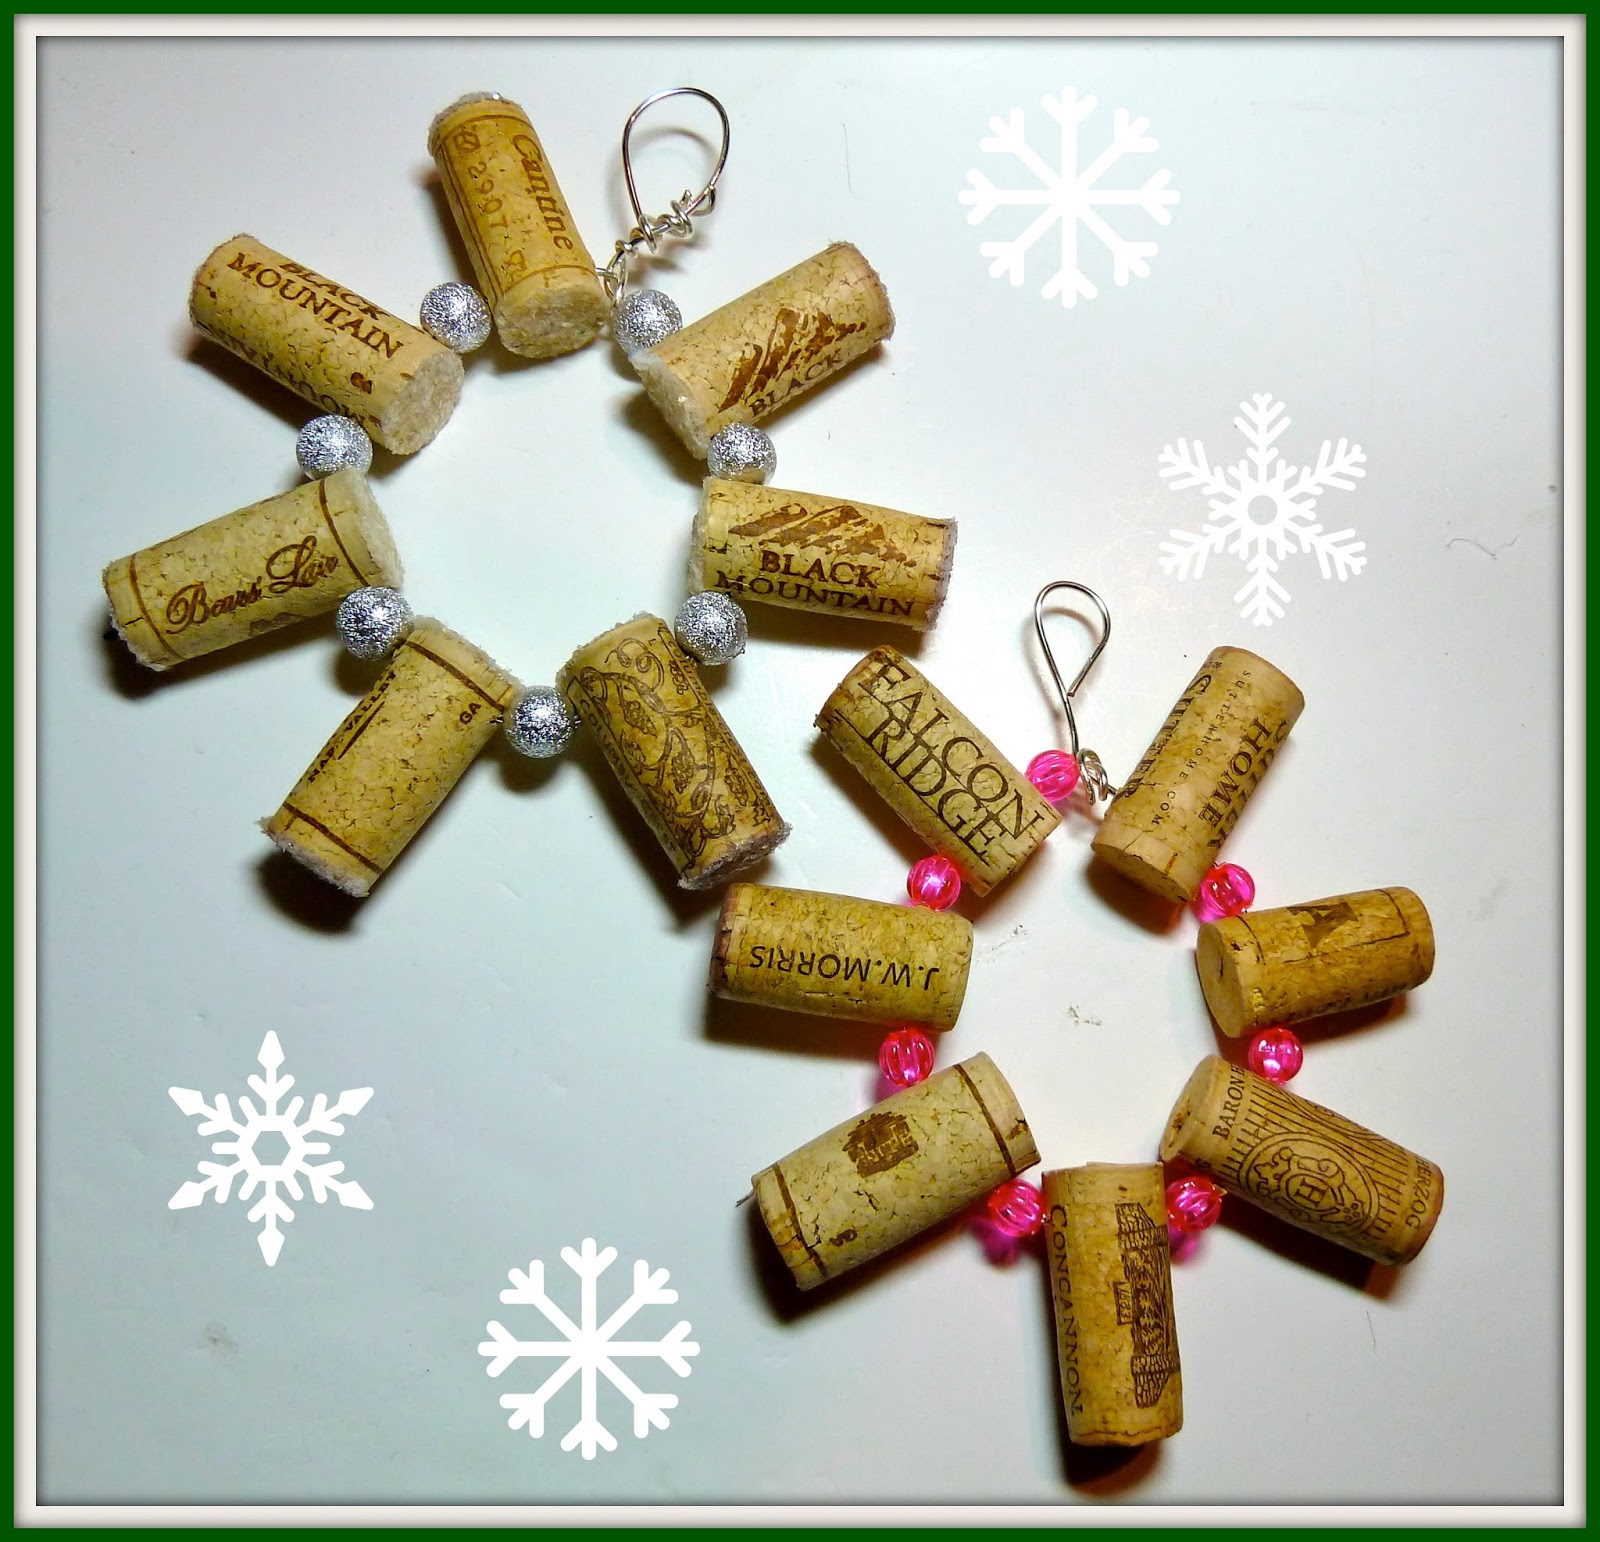 Make it easy crafts wine cork snowflake ornament - Crafts made with wine corks ...